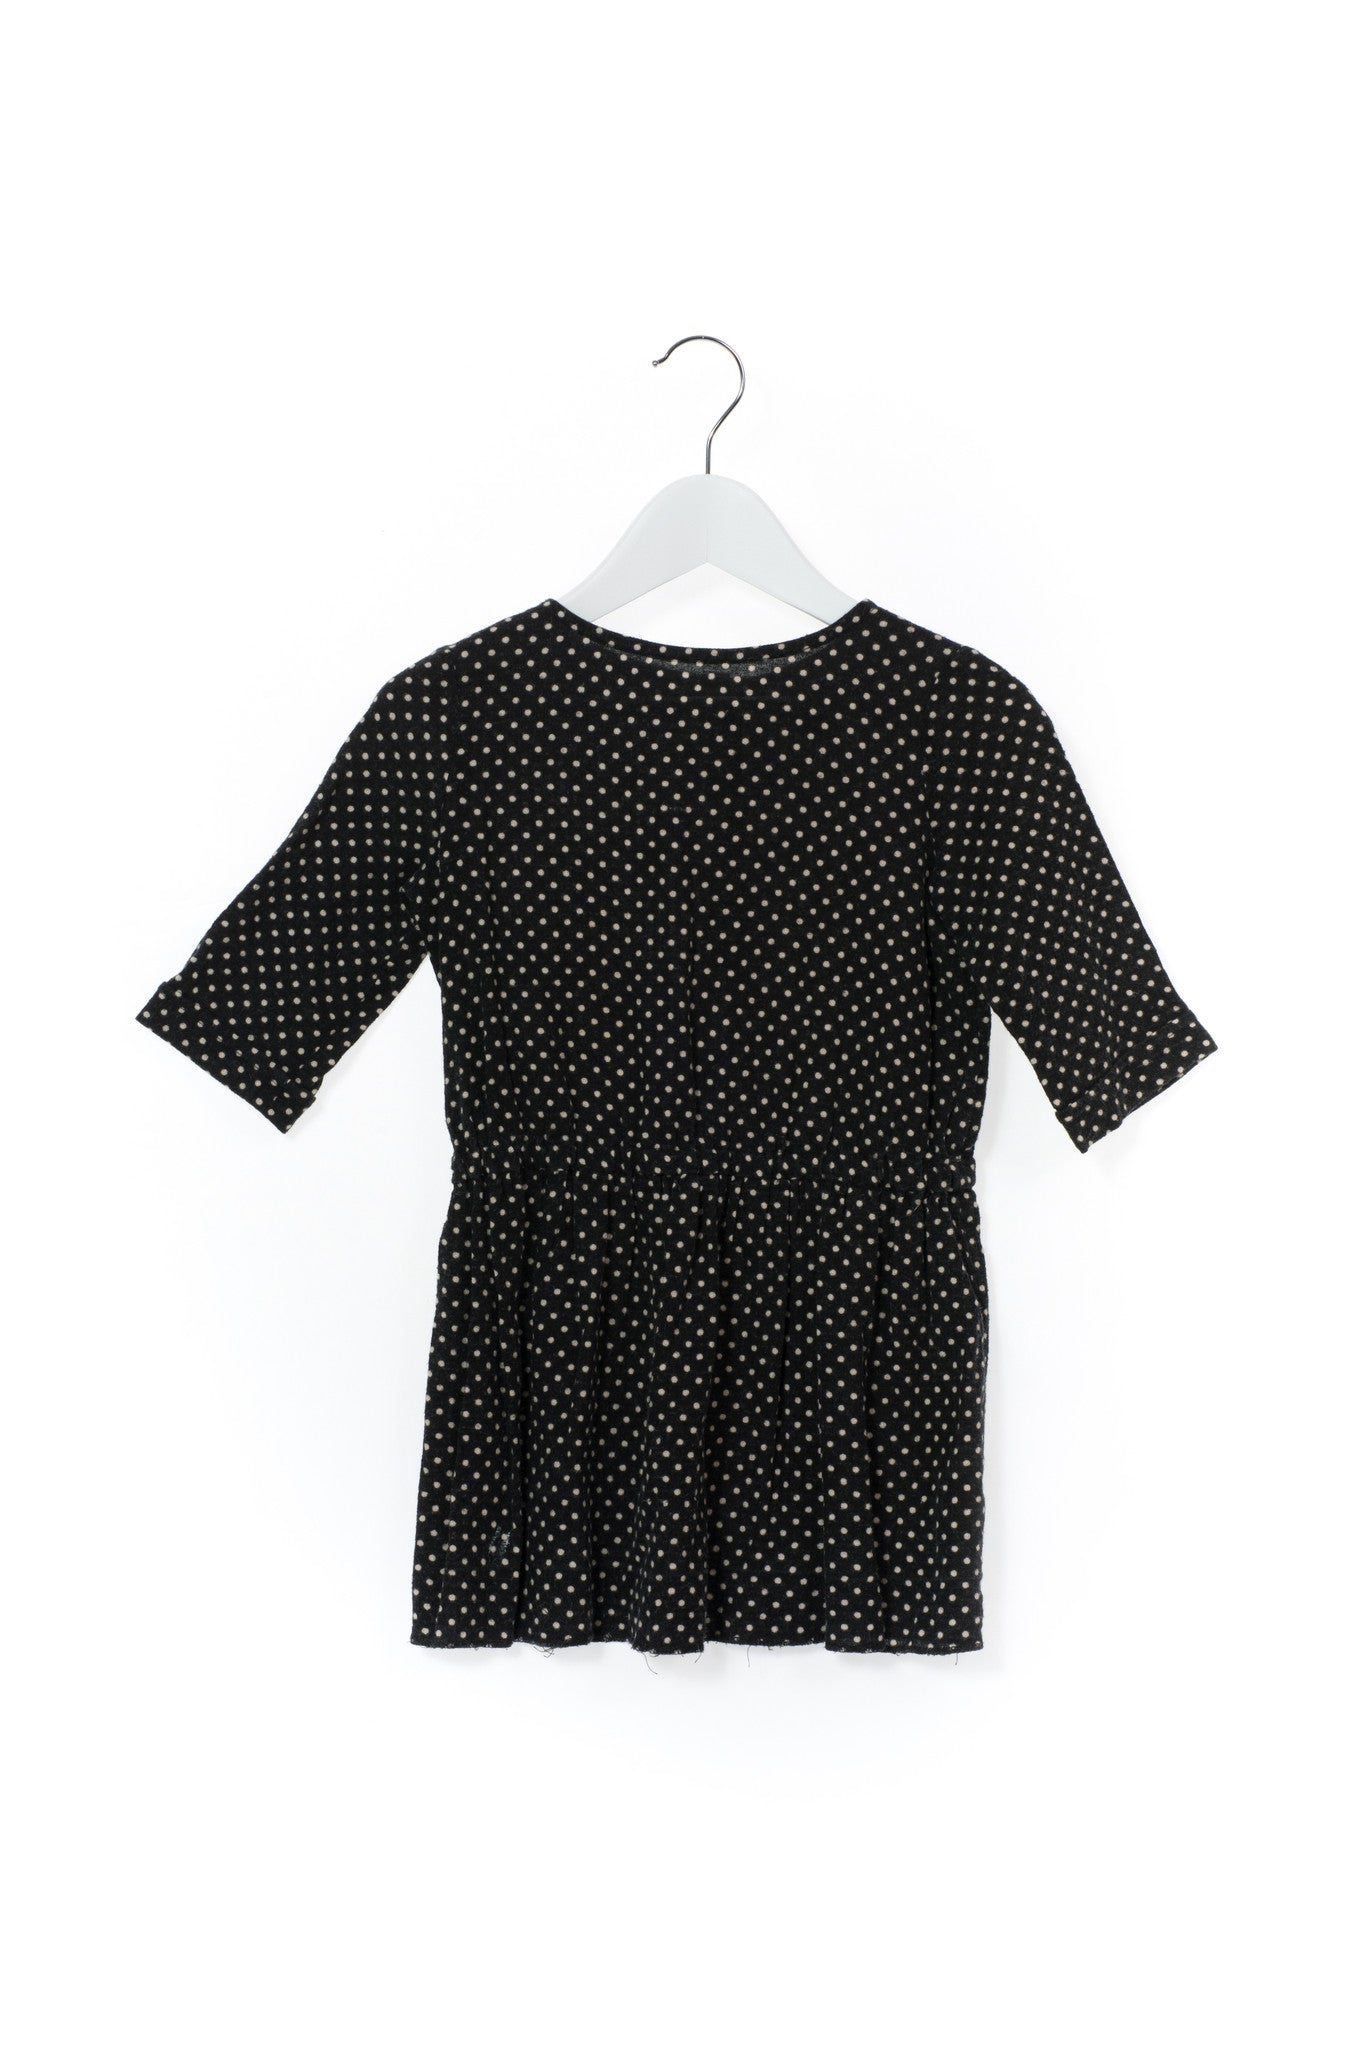 Dress 4T, Bonpoint at Retykle - Online Baby & Kids Clothing Up to 90% Off